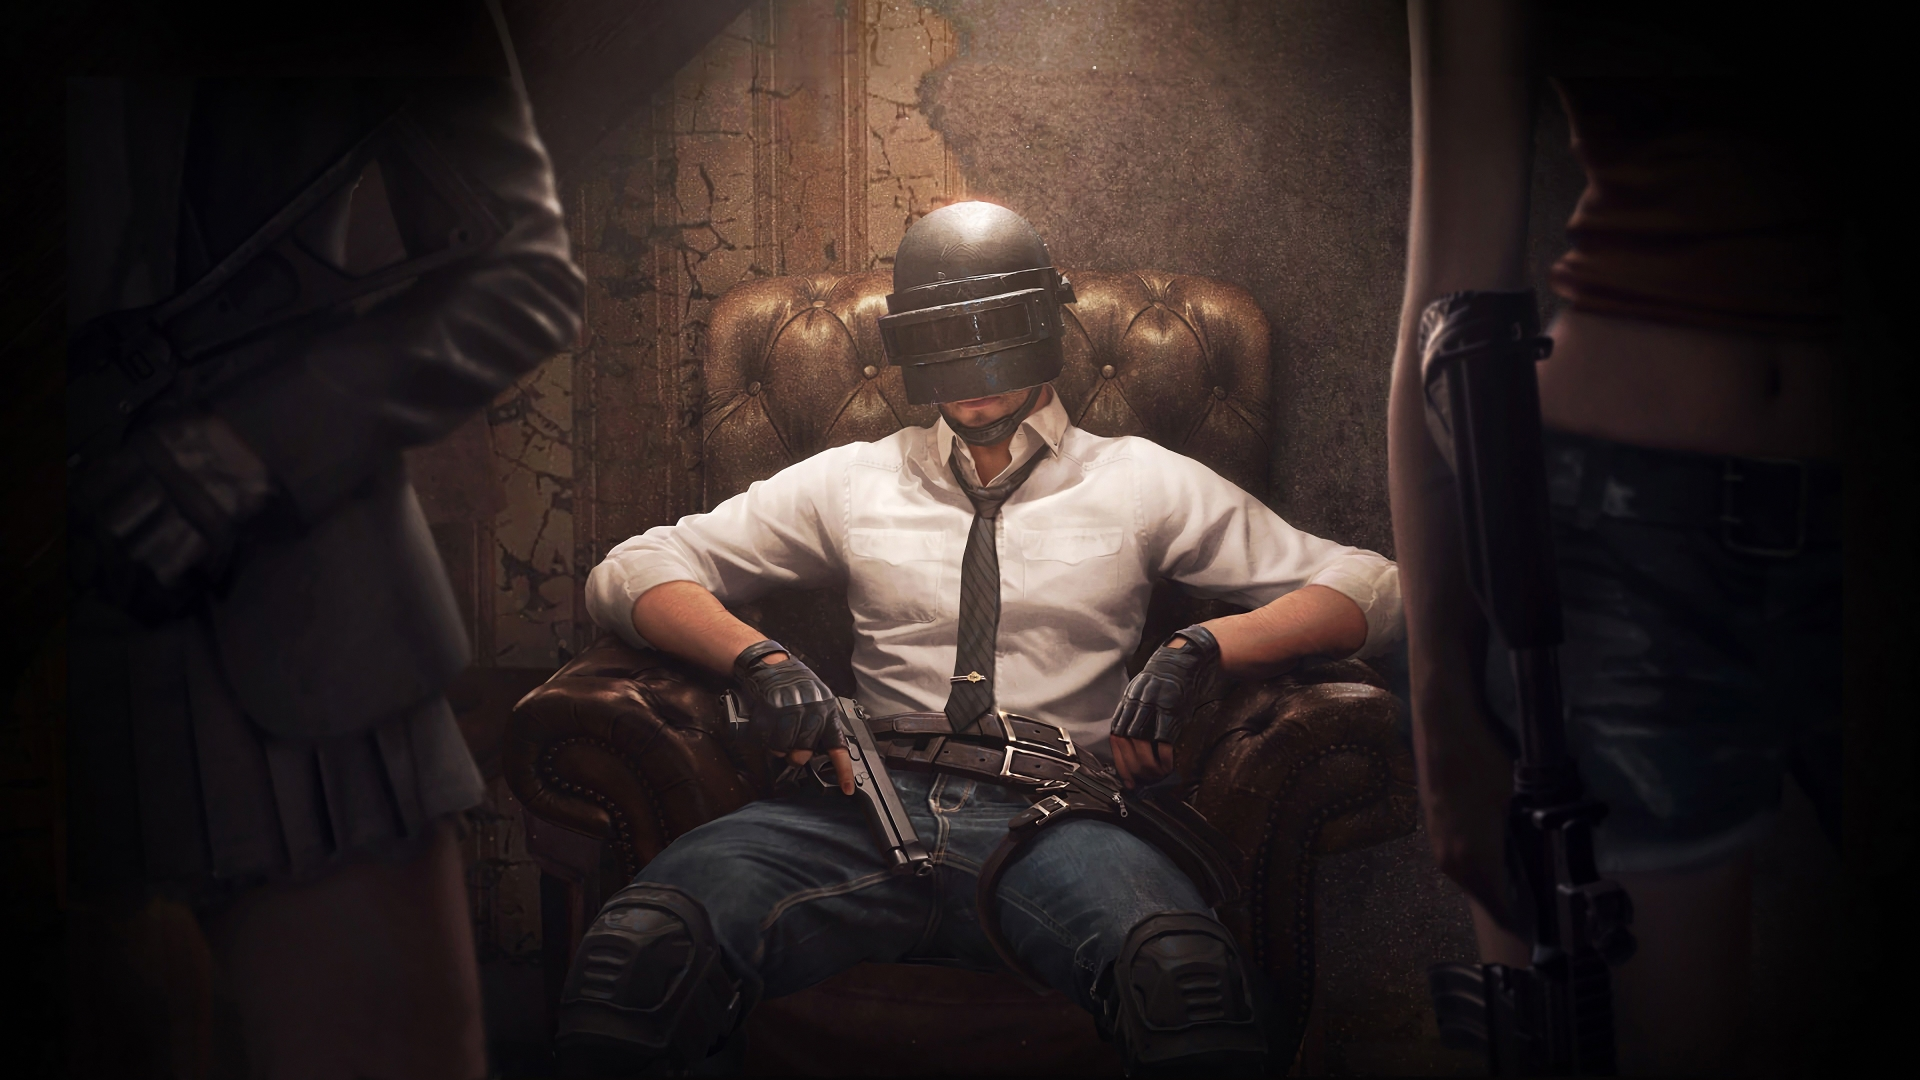 Top N Pubg Wallpapers In Full Hd For Pc And Phone خلفيات ببجي